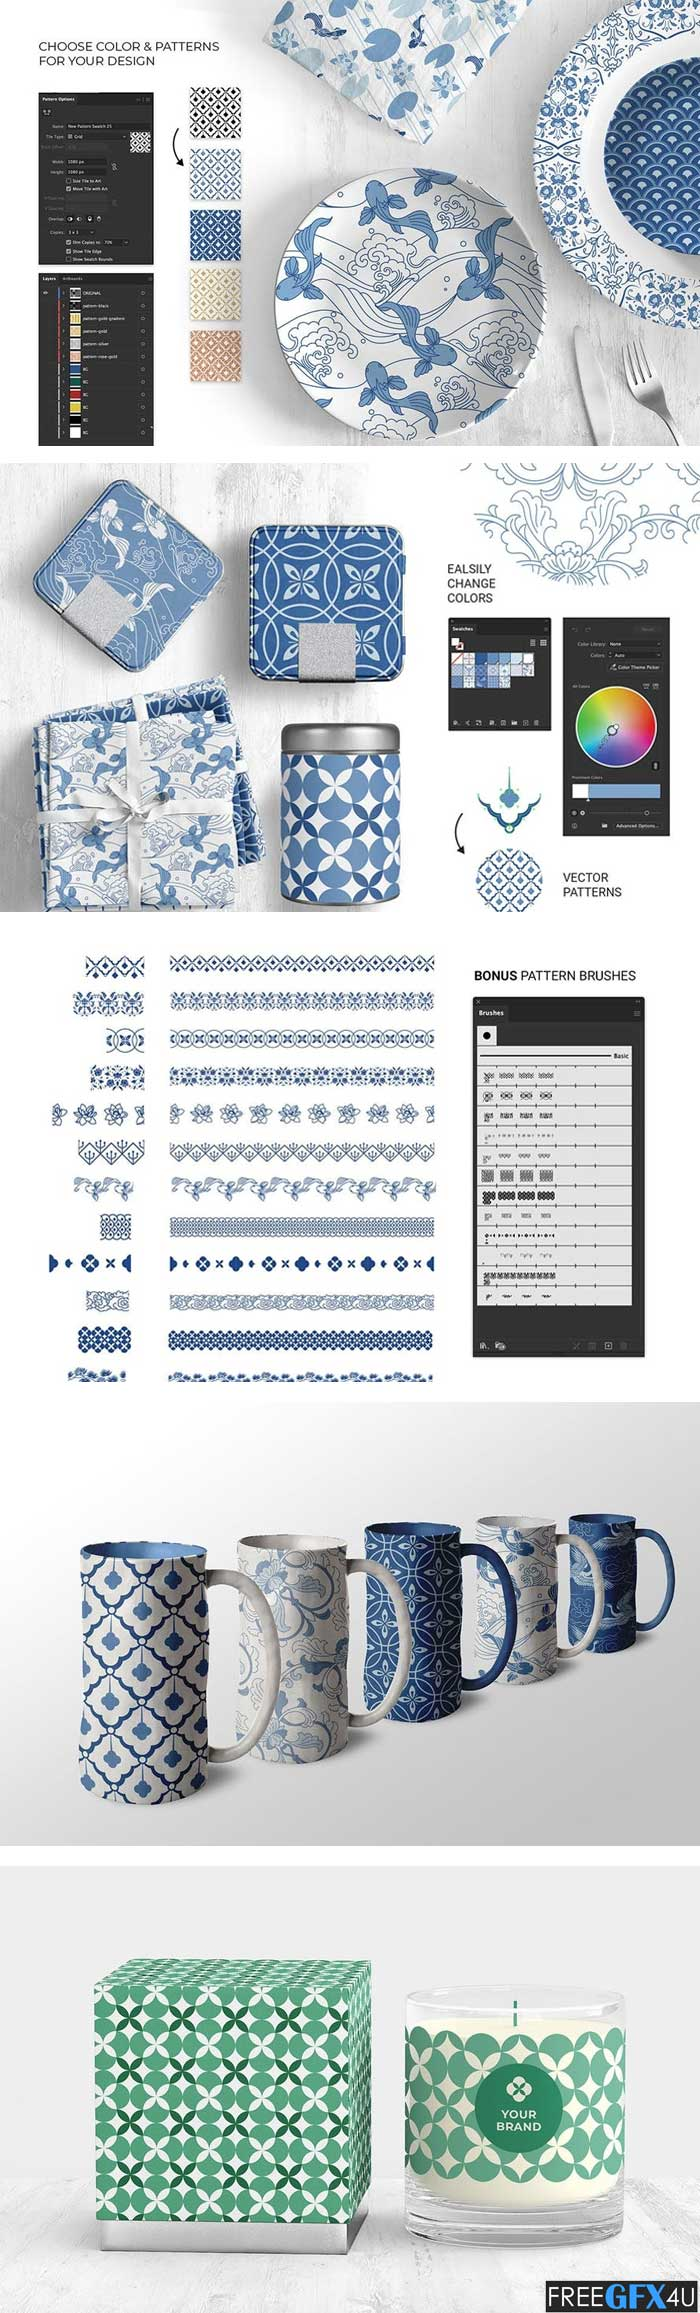 Chinese Ceramic Patterns Collection